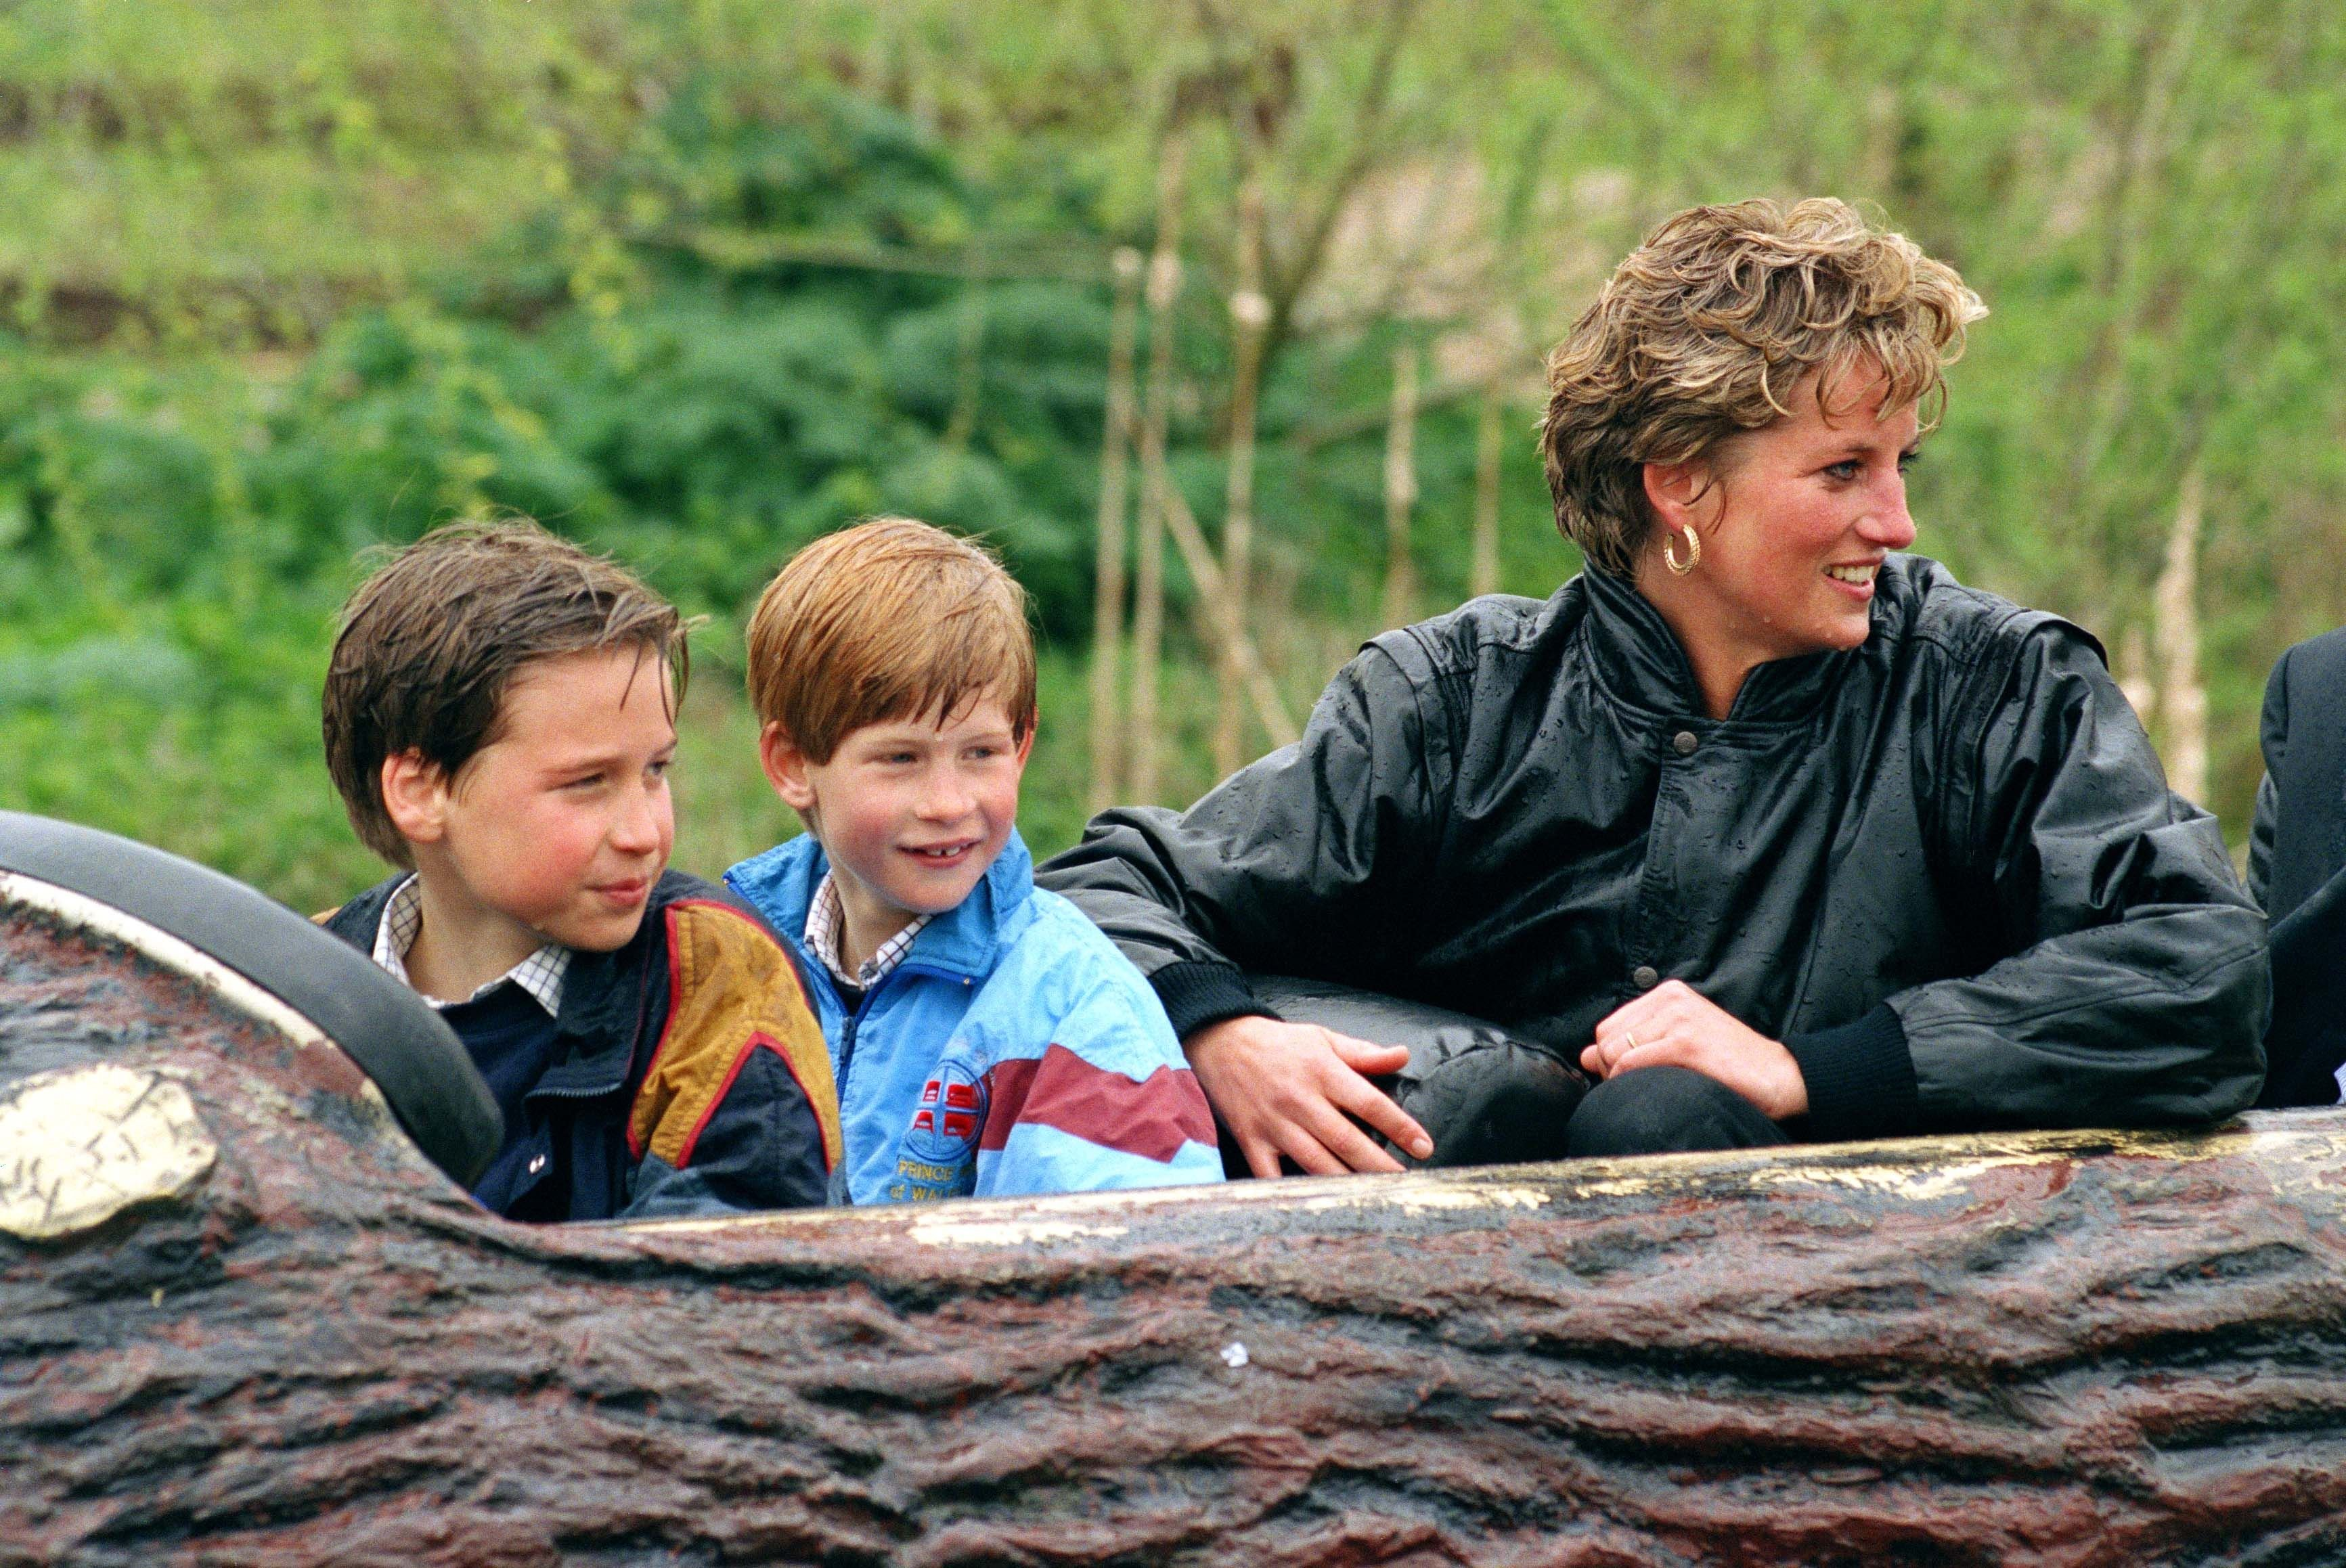 Diana Princess and sons Prince William and Prince Harry at The 'Thorpe Park' Amusement Park   Photo: Getty Images